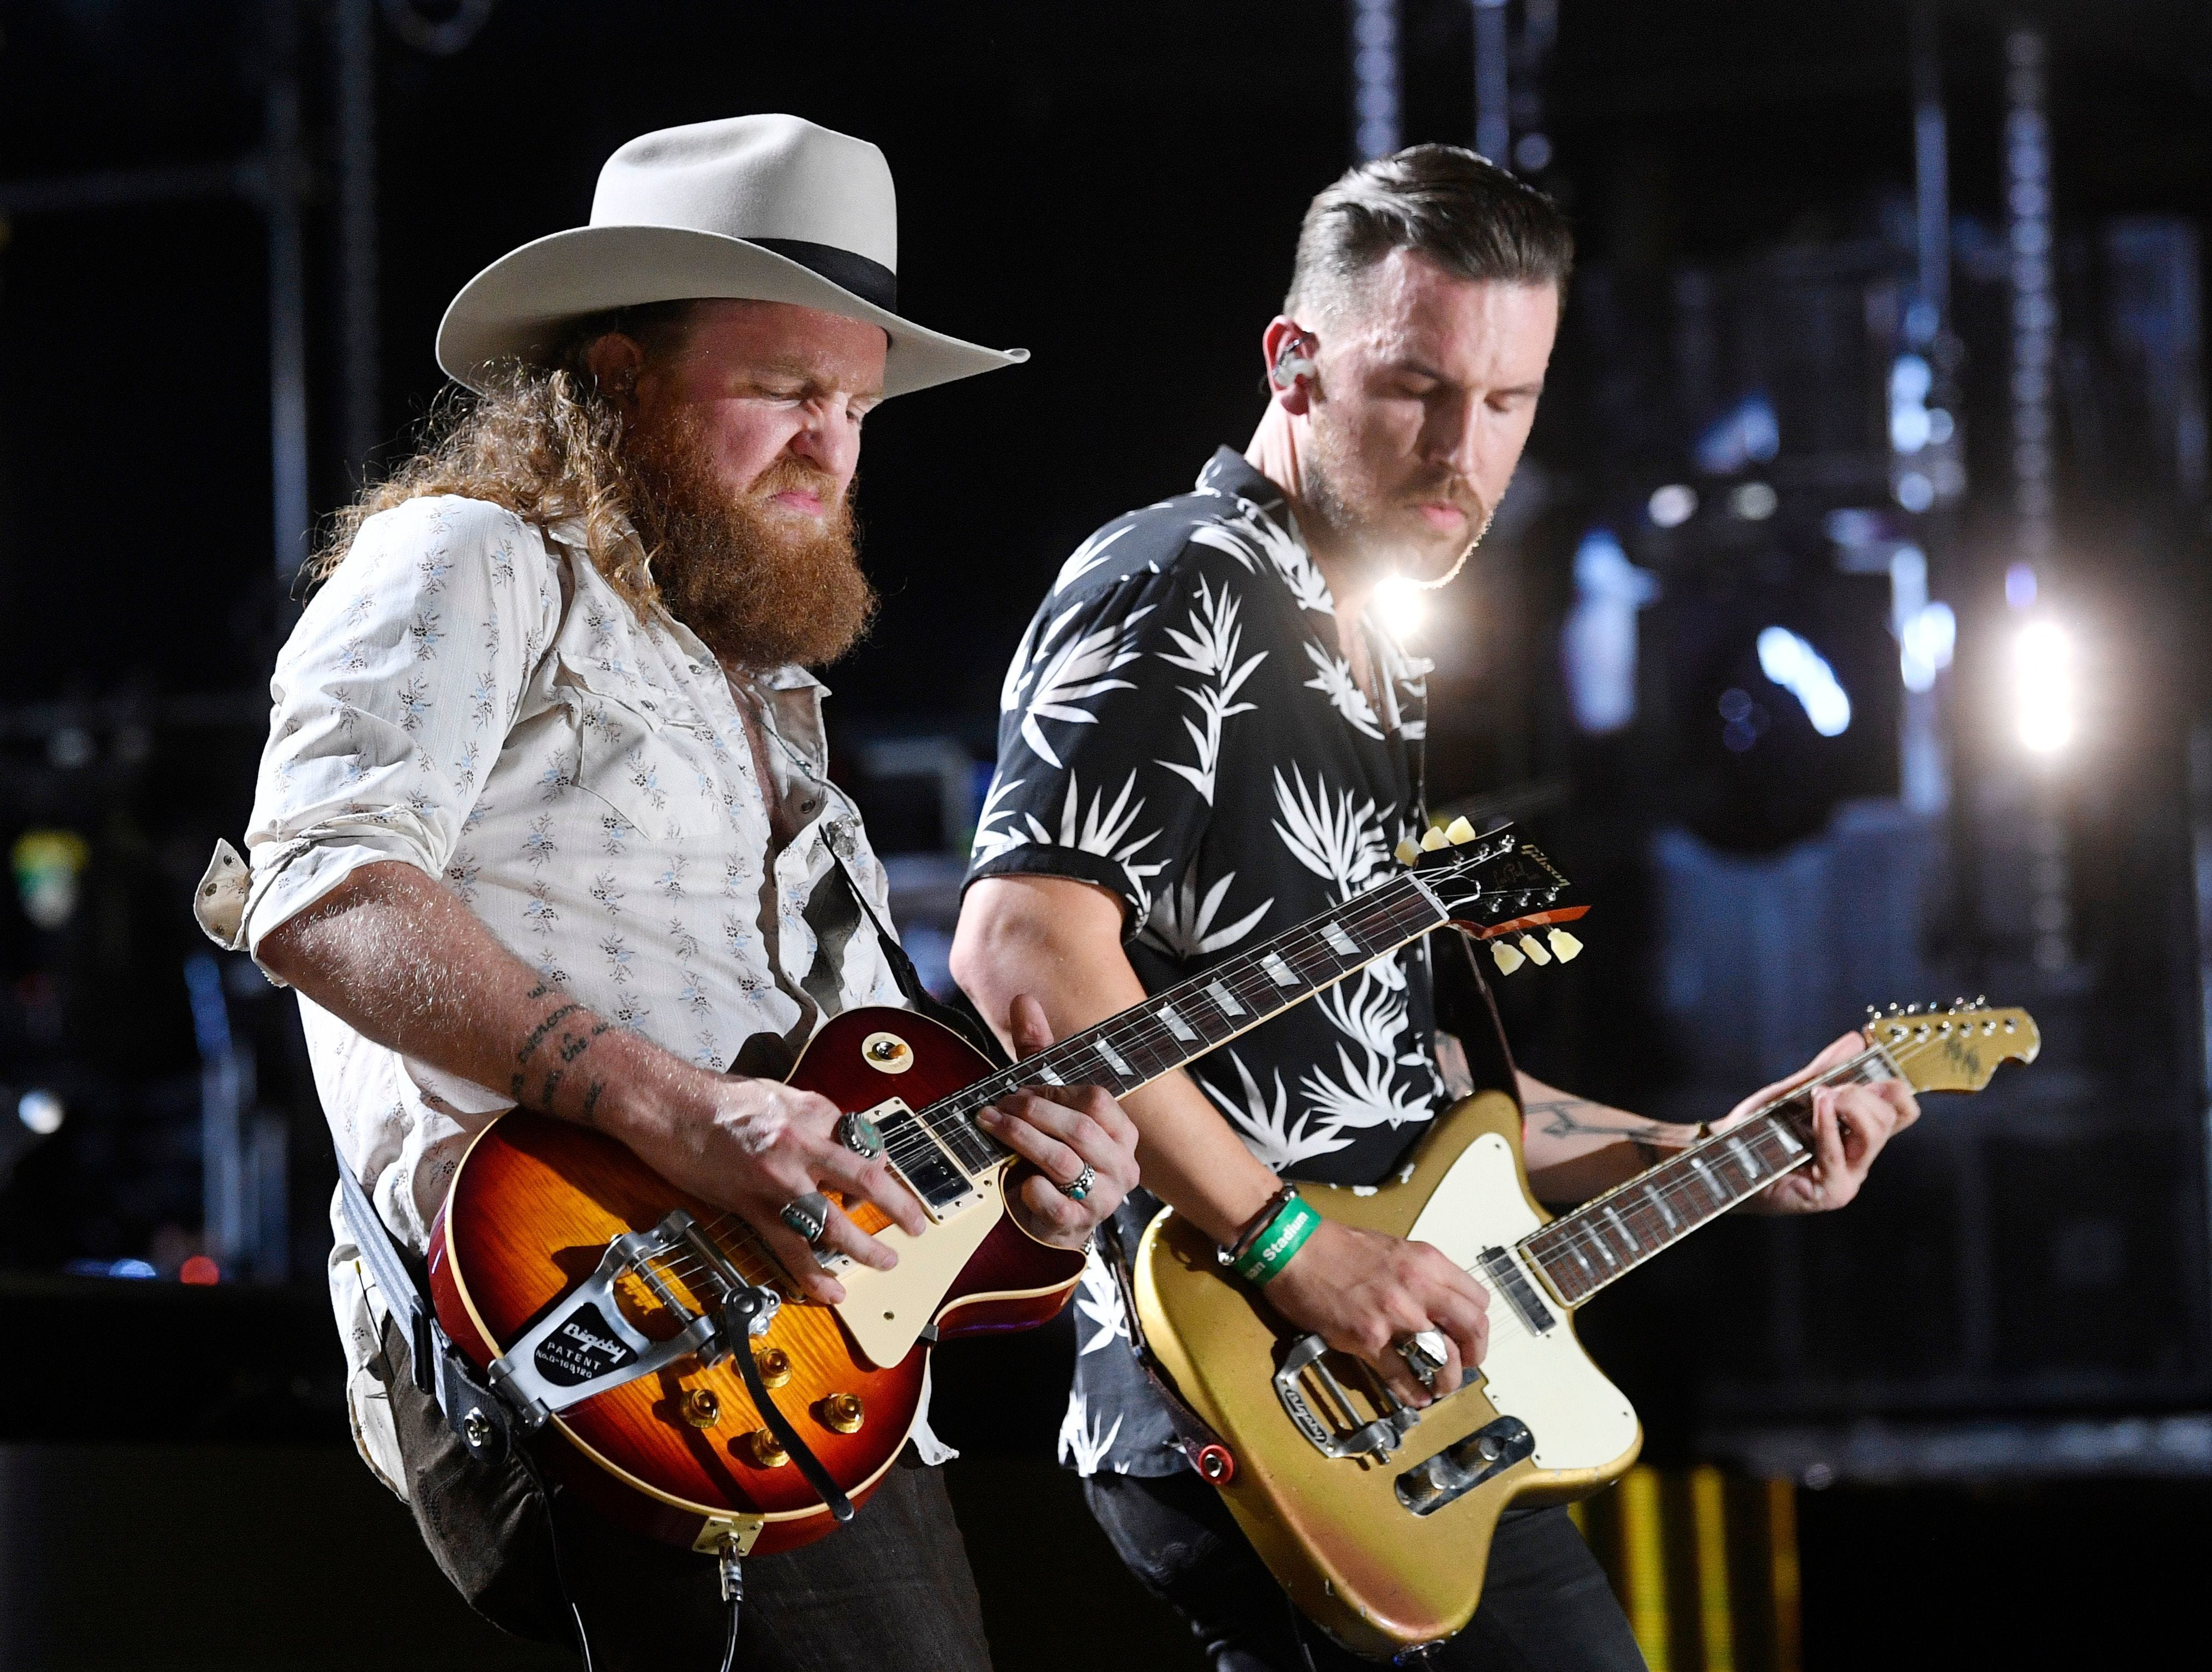 The Brothers Osborne are scheduled to play Nissan Stadium during CMA Fest 2019.